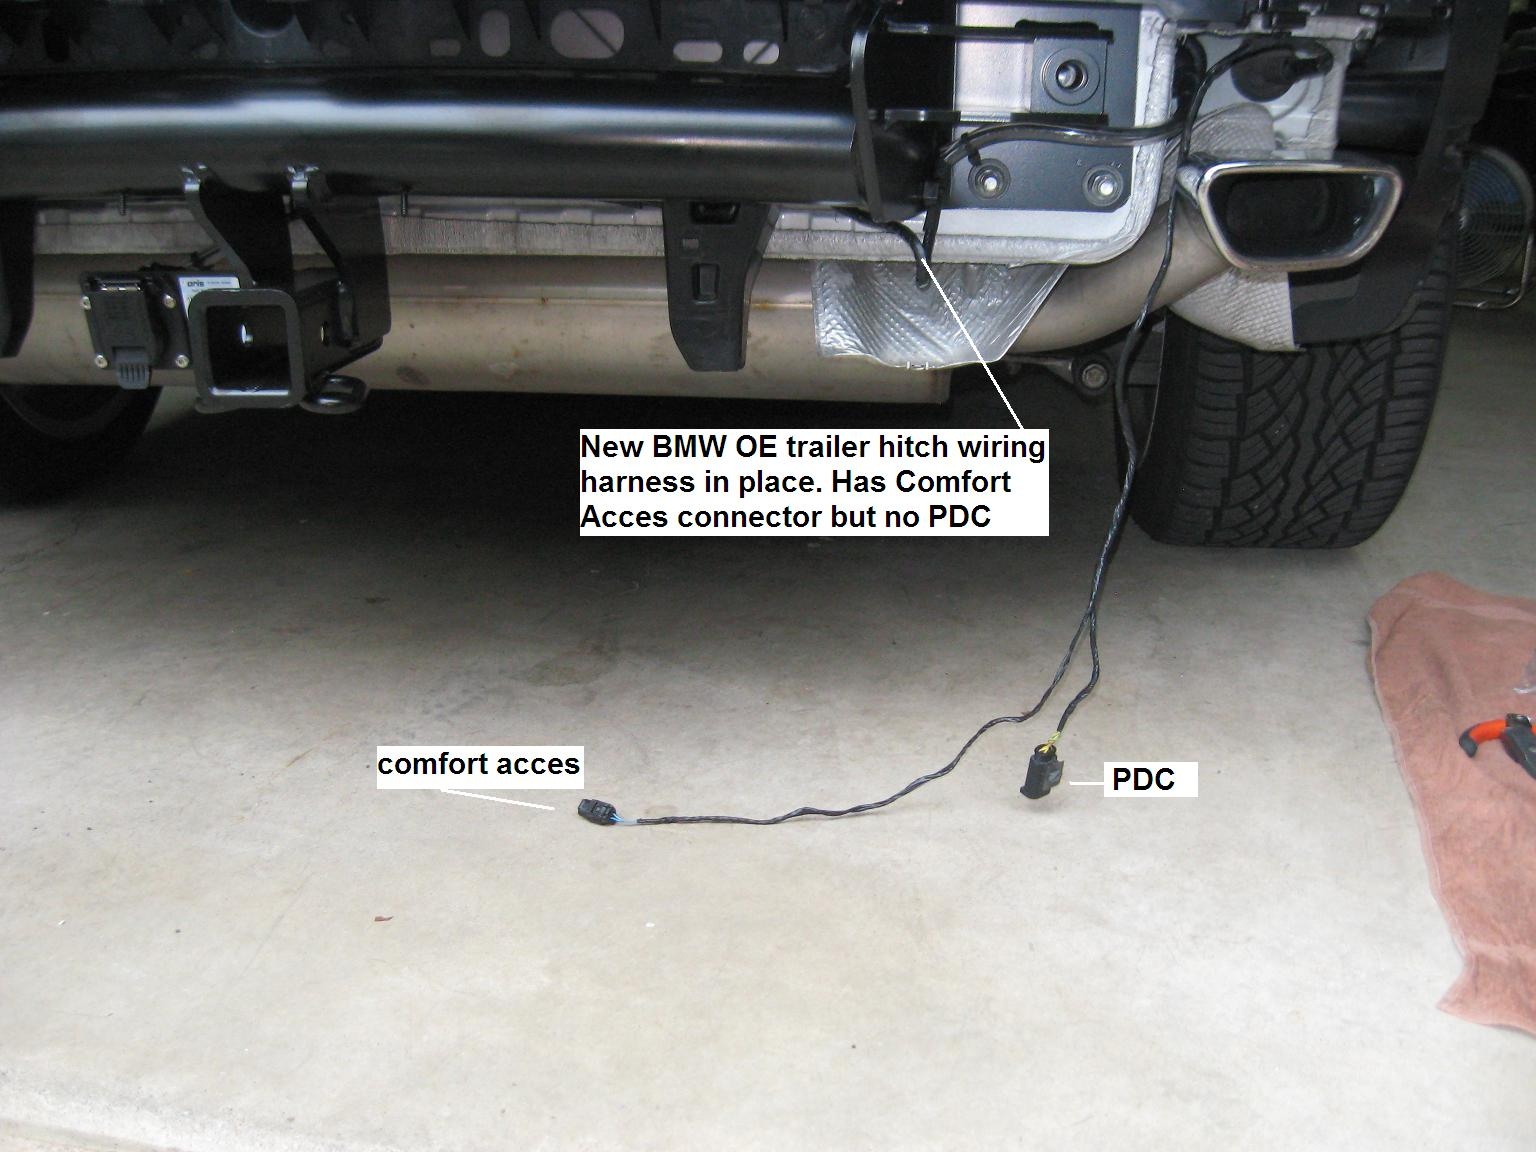 Bmw X5 Trailer Hitch Wiring Library Towing Harness Need Help With E70 Lci Installation Attached Images